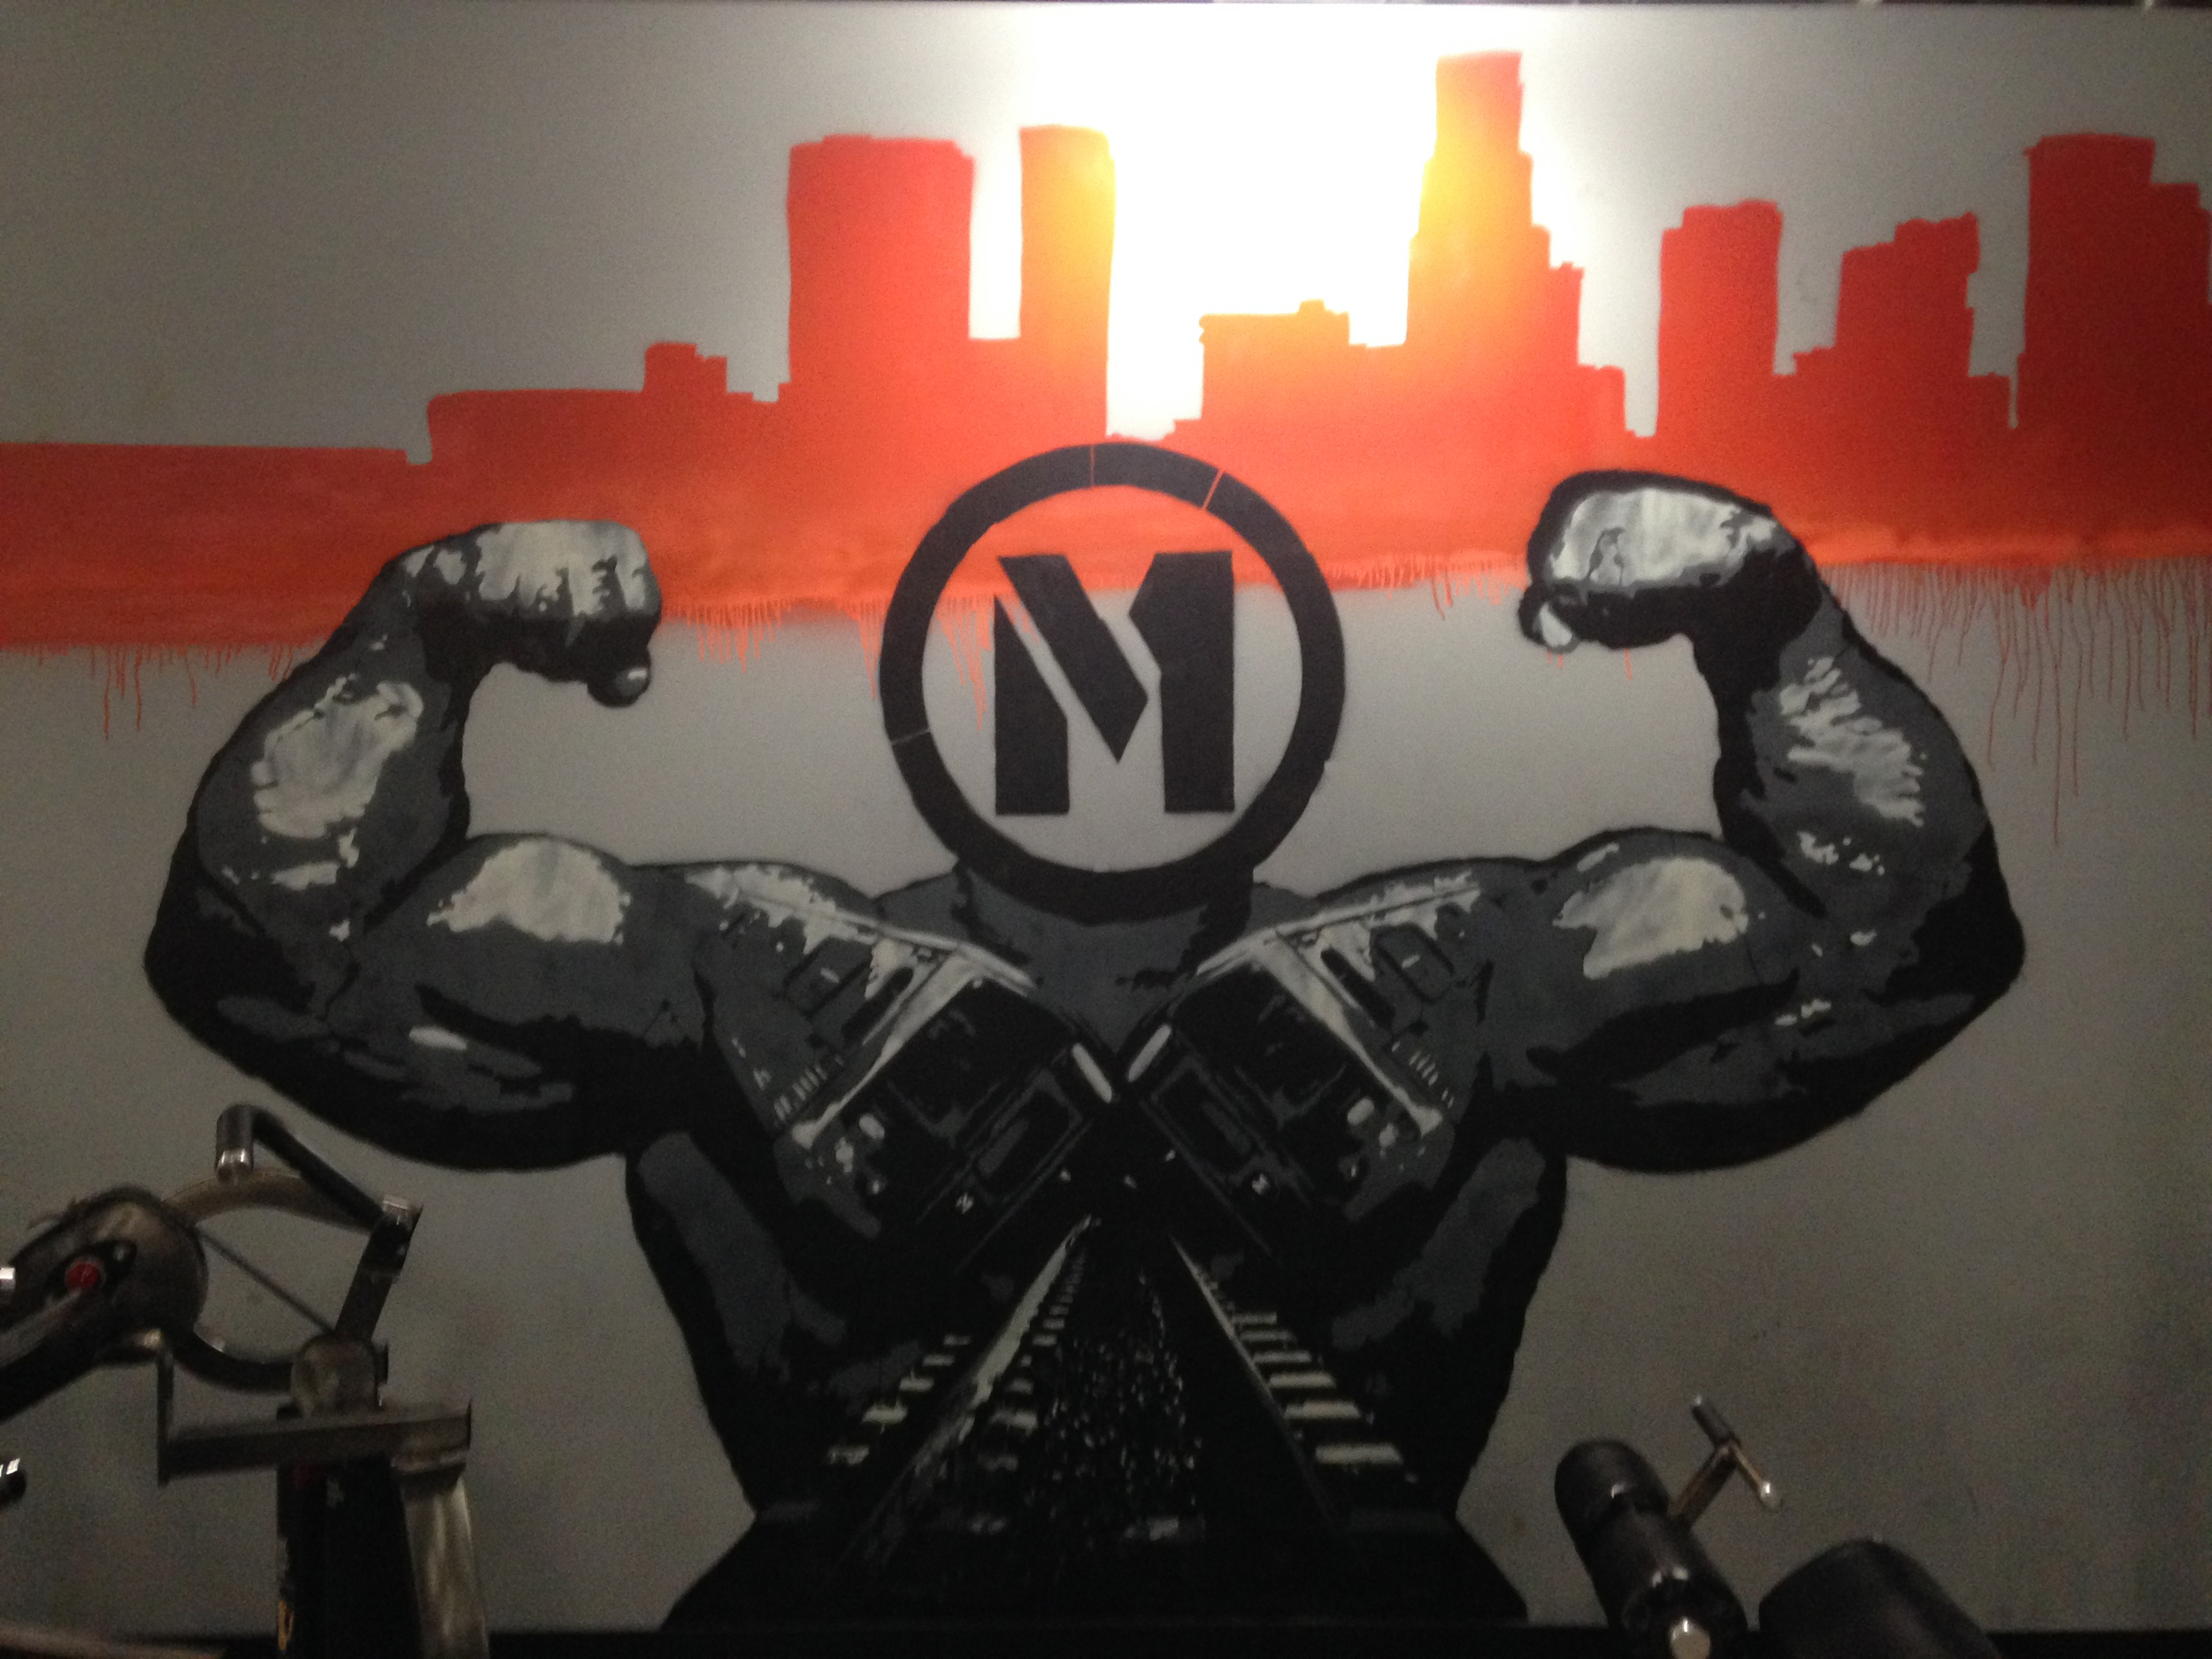 Metro Fitness Mural - Atwater Village - Ca